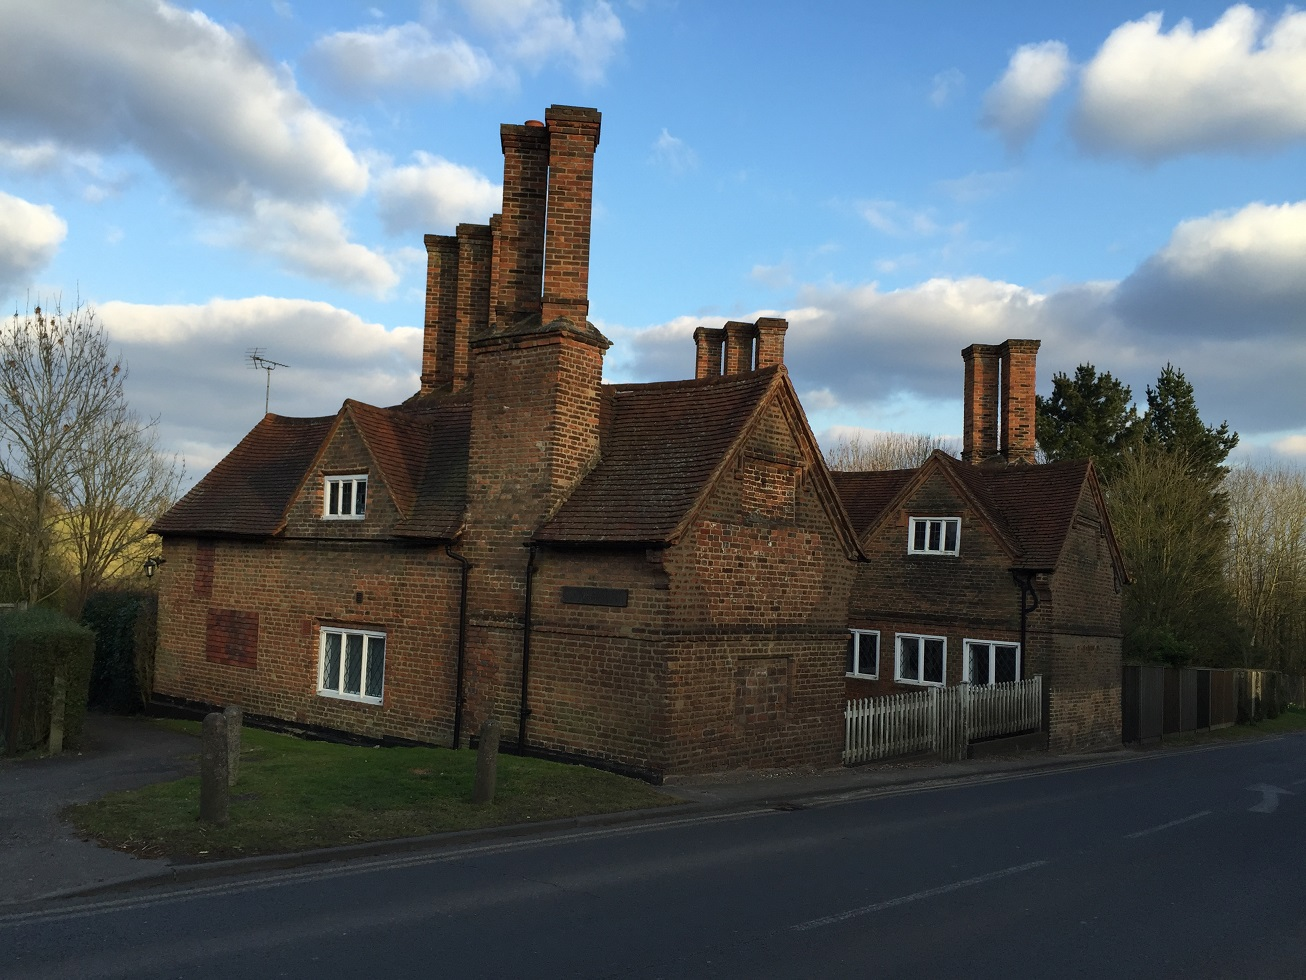 Countess of Derby's alms houses, Harefield